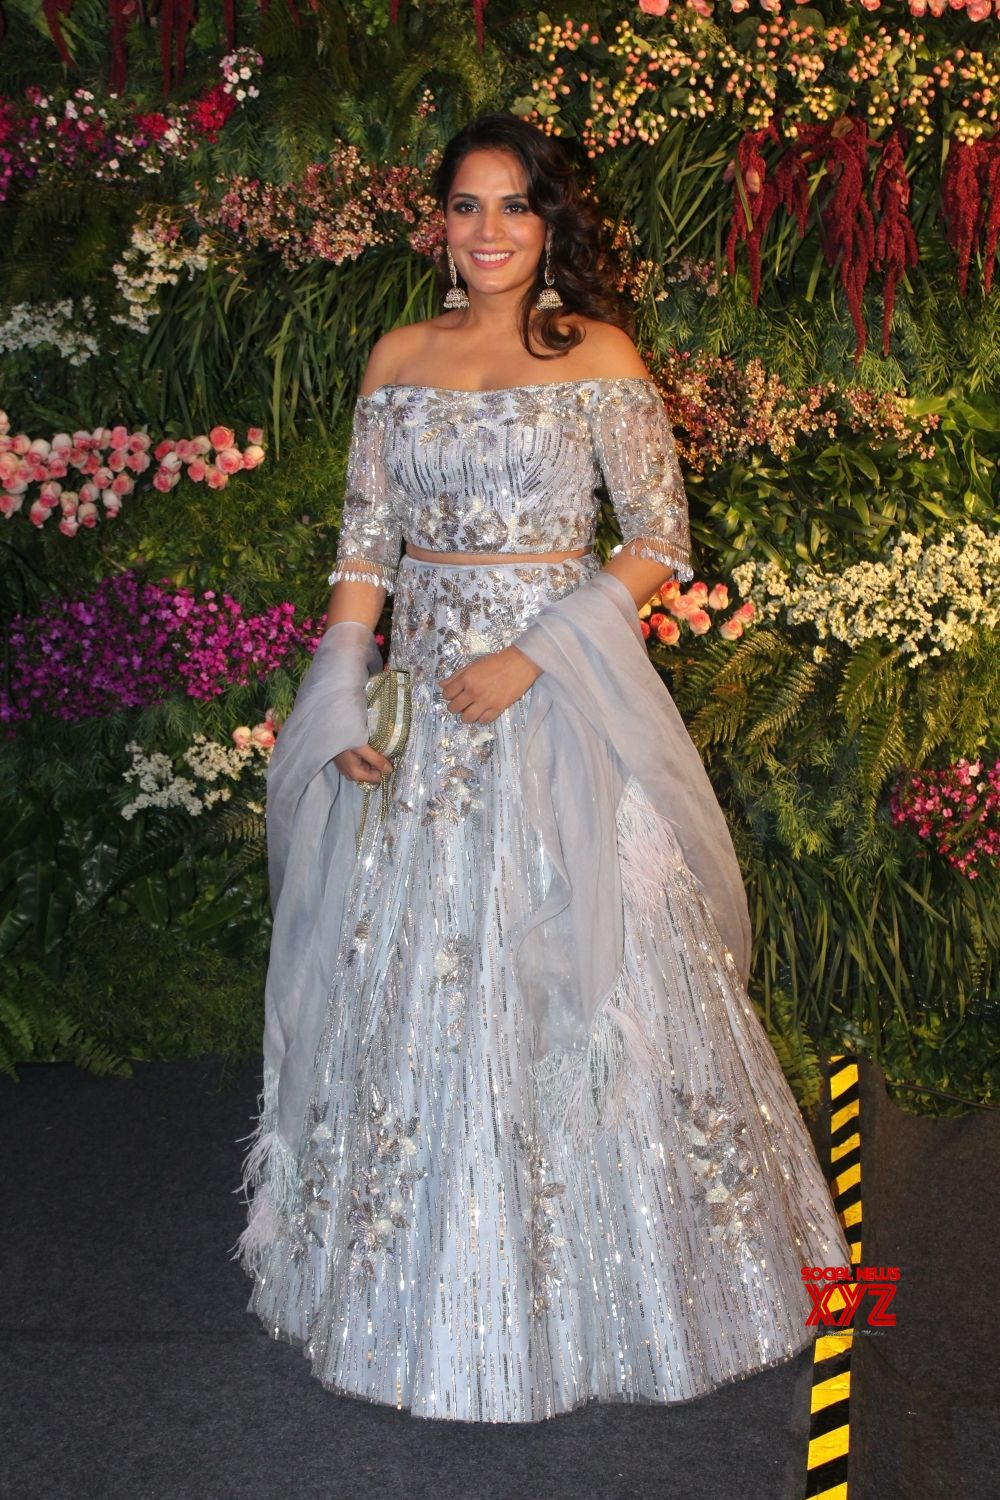 Mumbai: Virat Kohli   Anushka Sharma's wedding reception   Richa Chadha